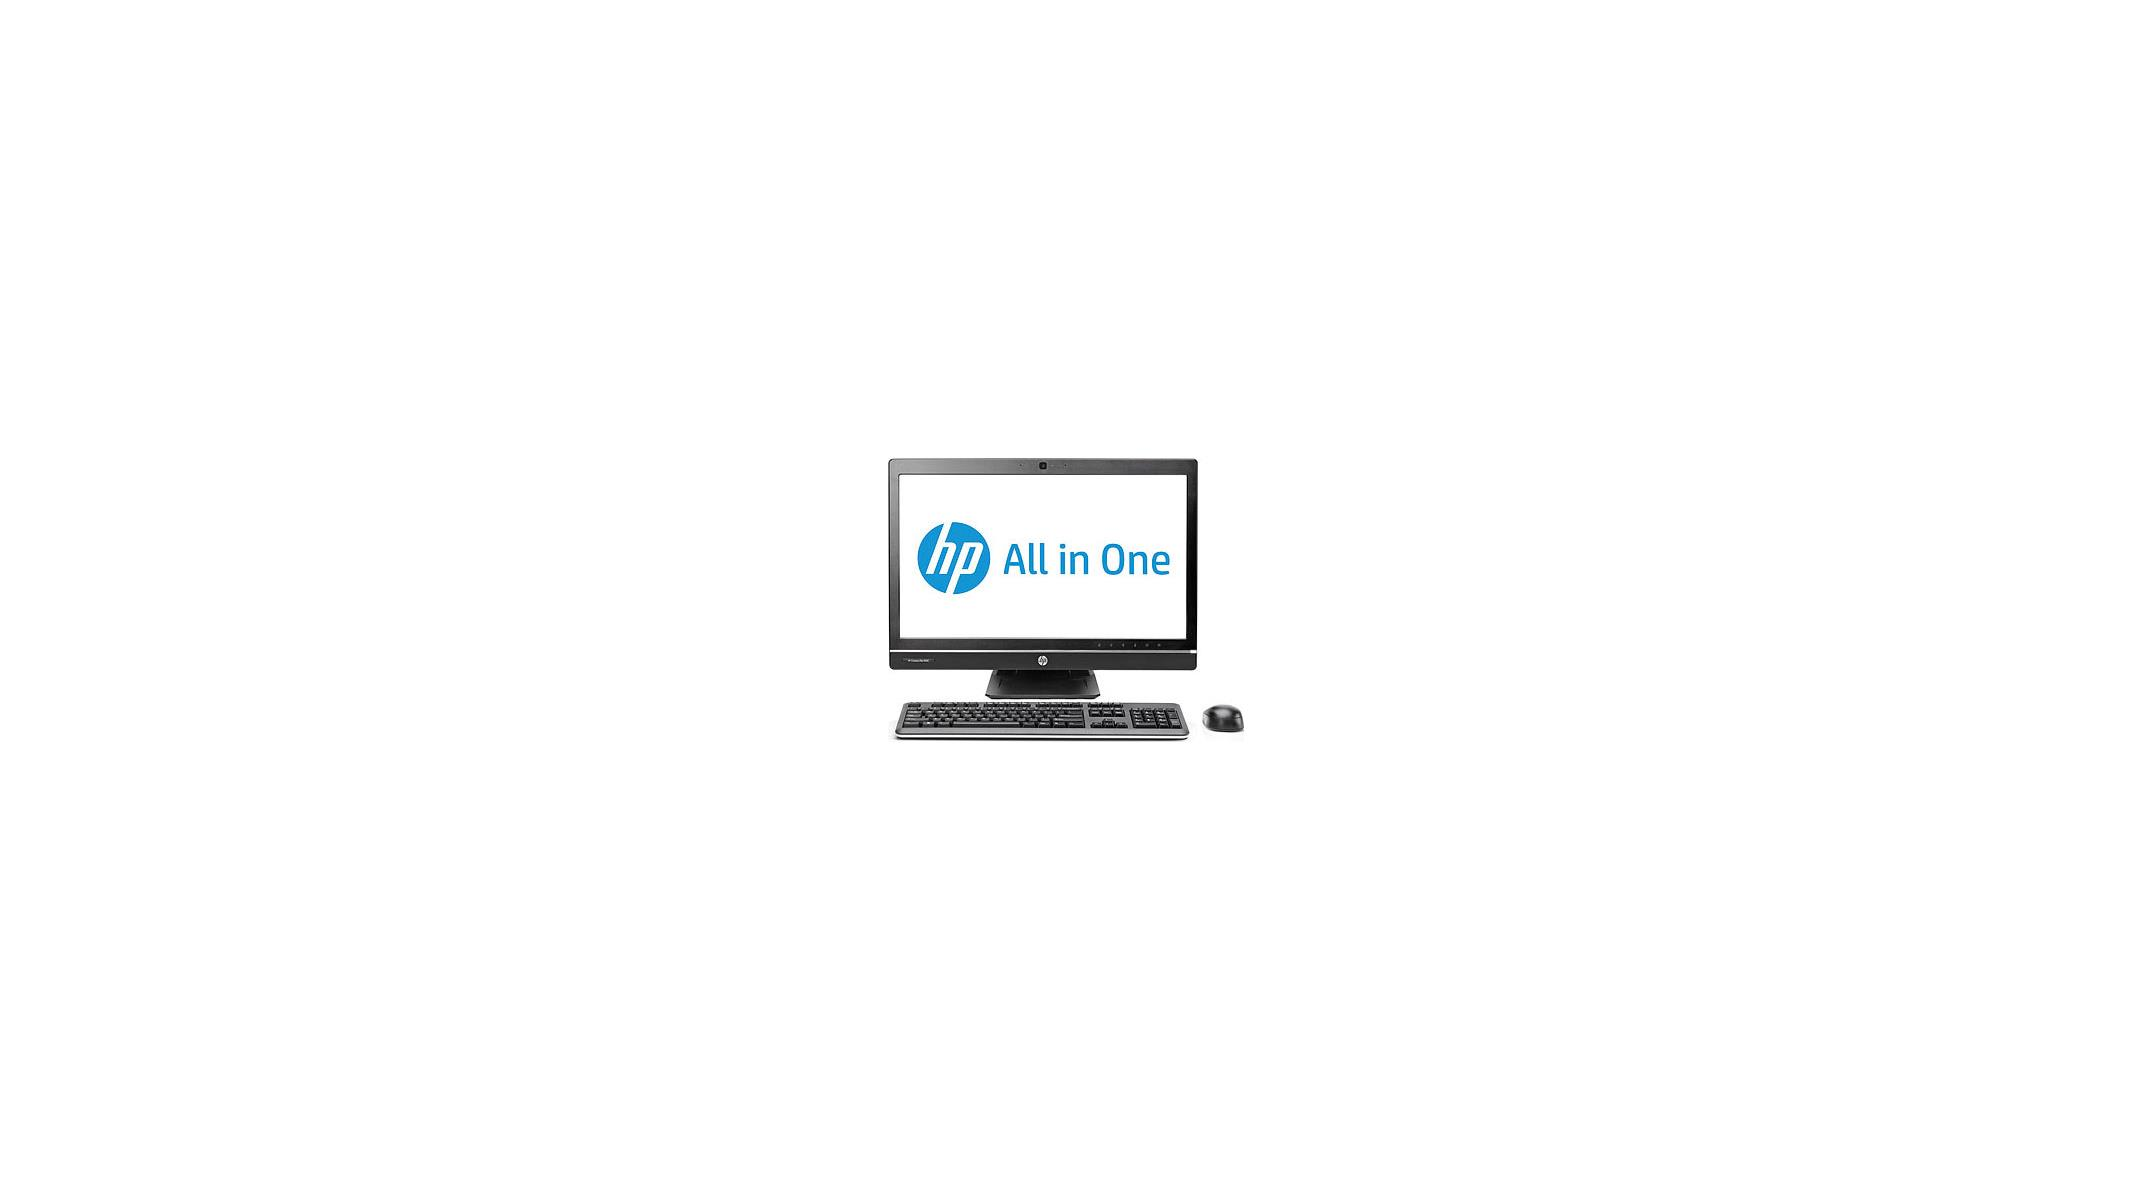 HP Introduces Four New All-In-One PCs | HotHardware